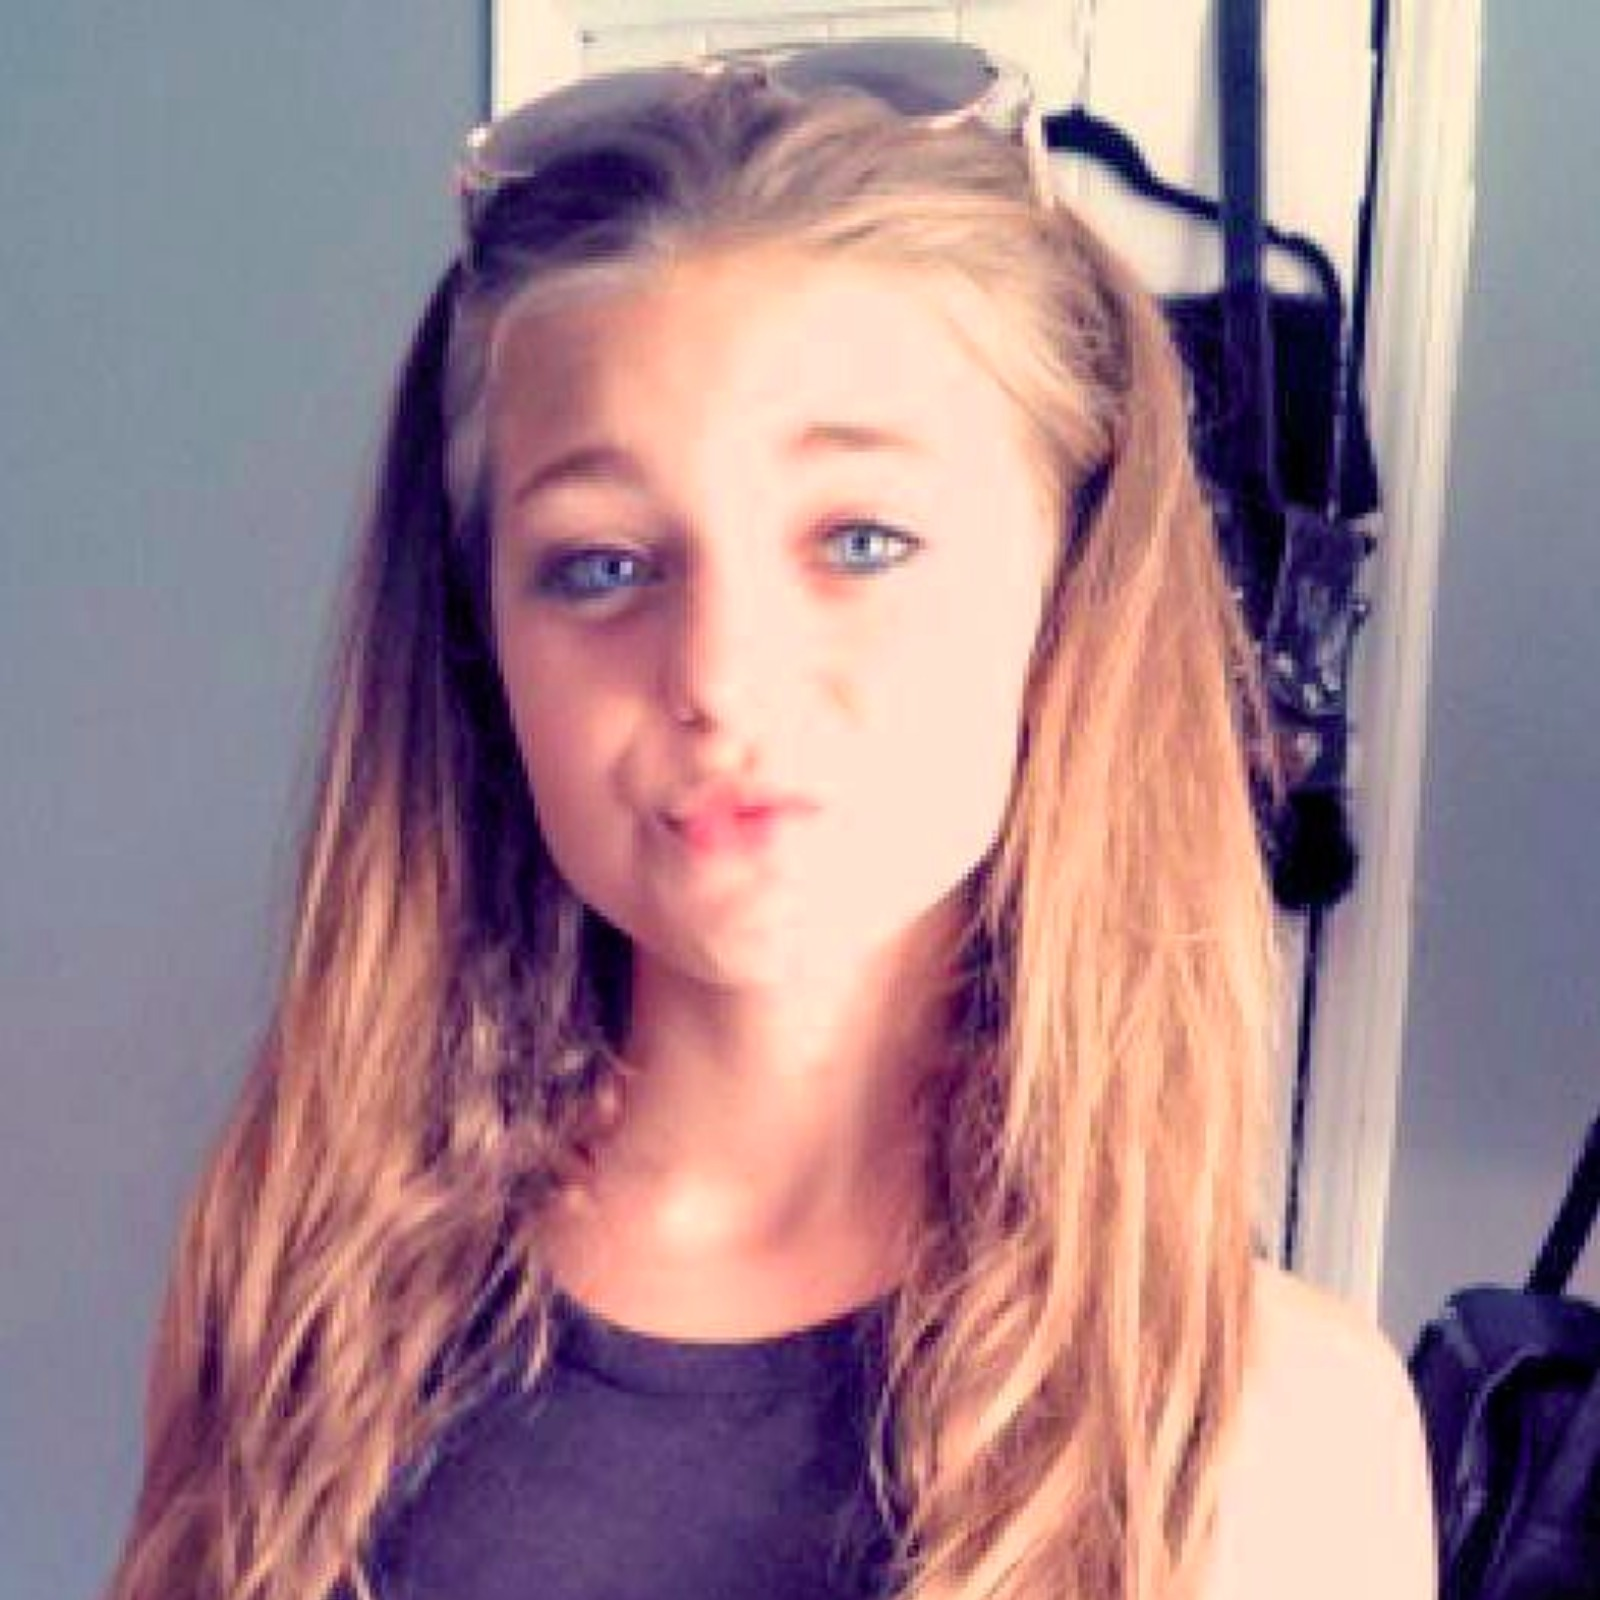 13 Year Old Boy Bedrooms: Appeal After 13-year-old Girl Goes Missing